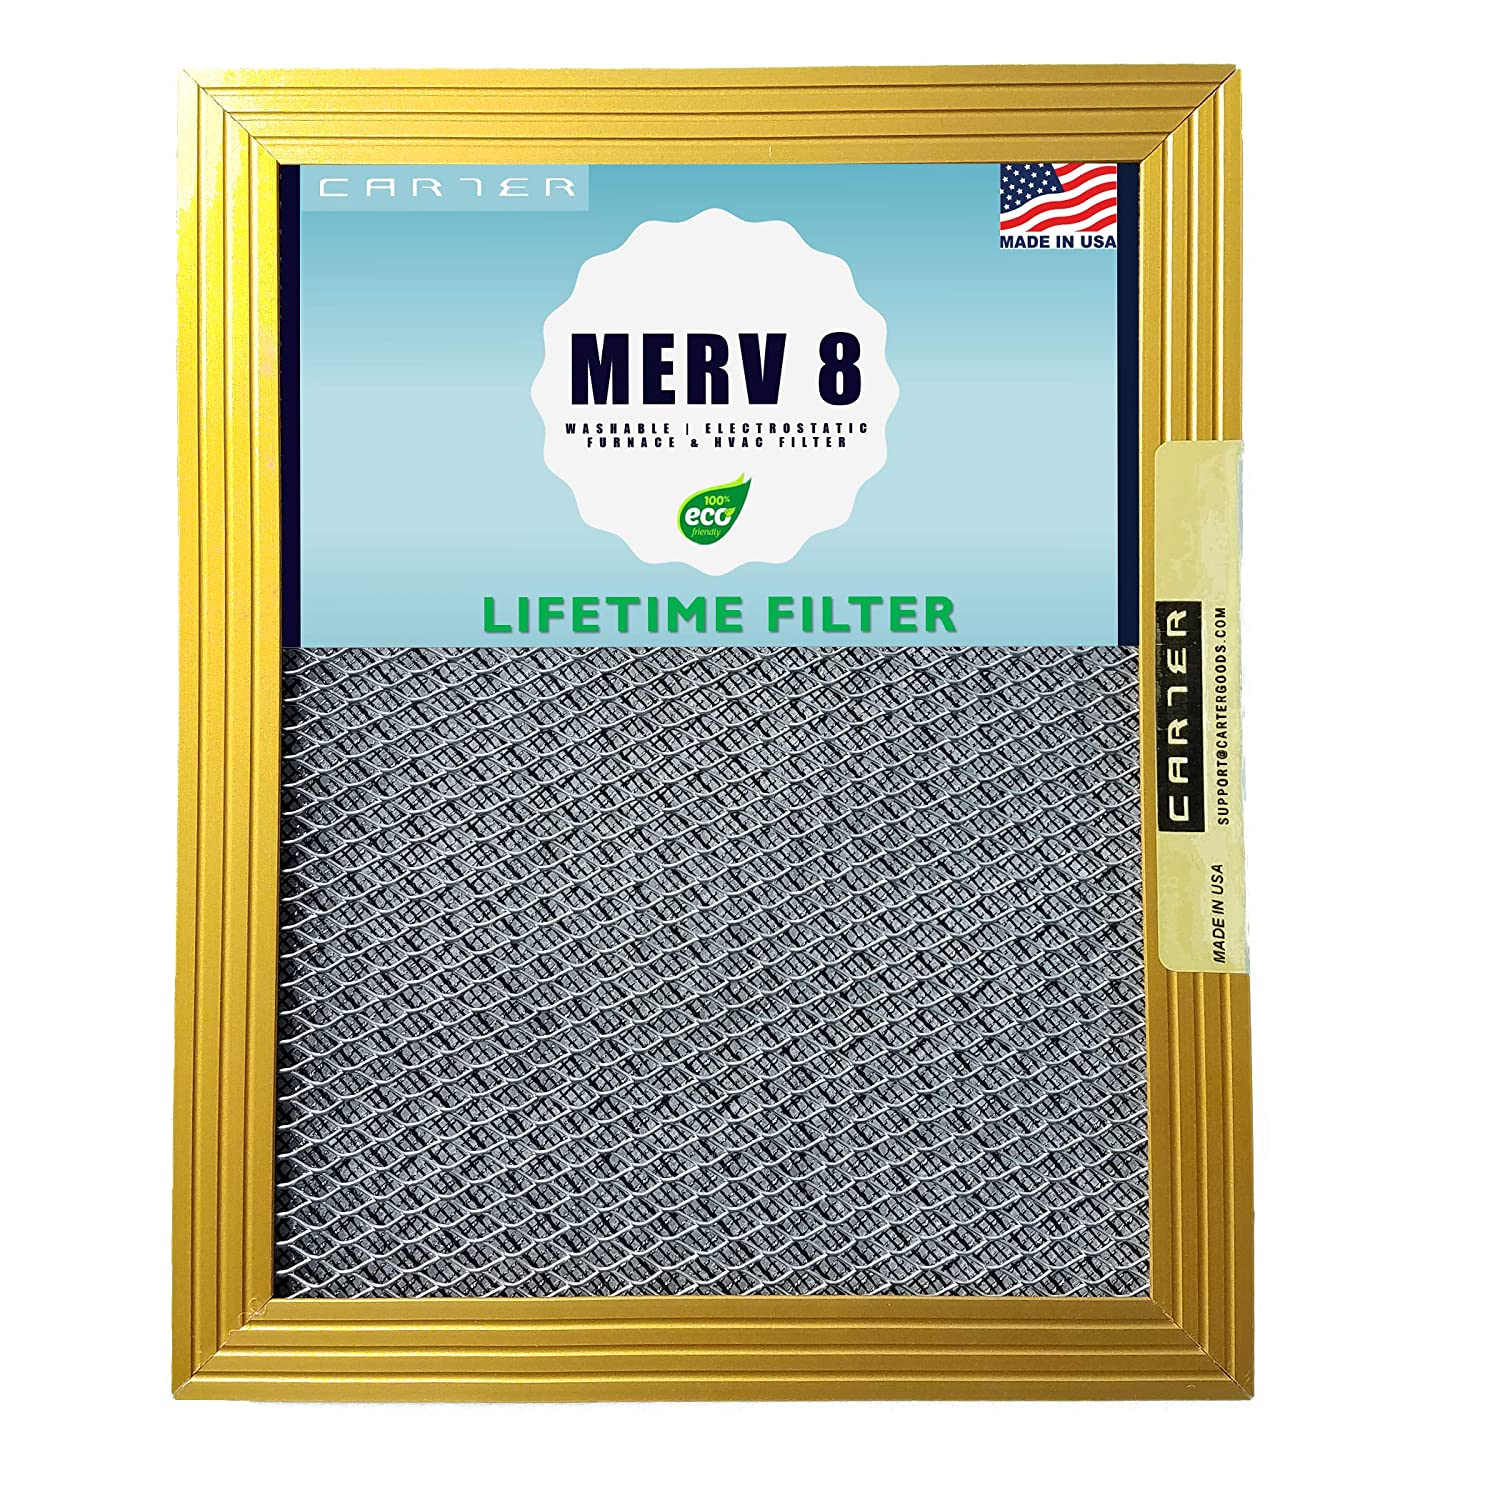 16x25x1 CARTER | MERV 8 | Lifetime HVAC & Furnace Air Filter | Washable Electrostatic | High Dust Holding Capacity | Never buy another filter